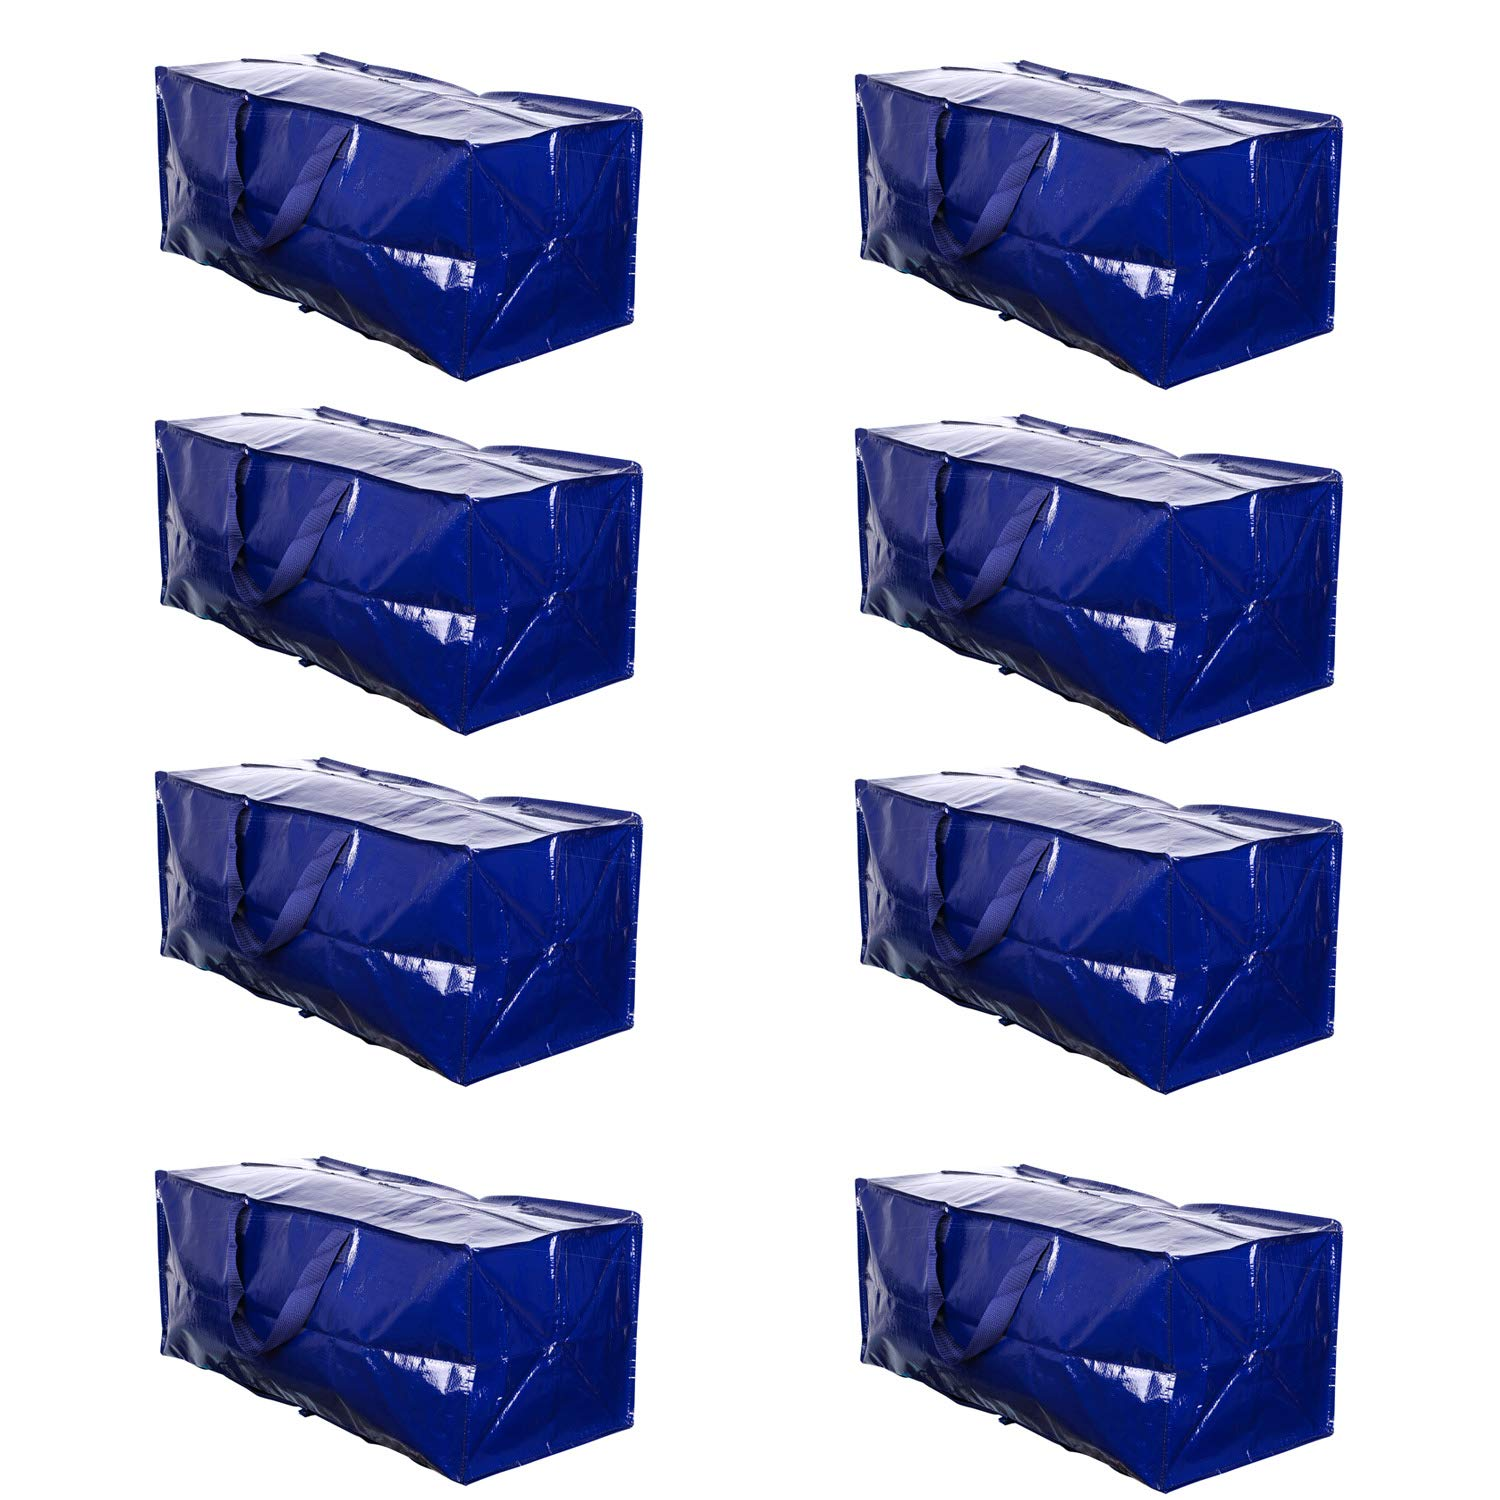 VENO Heavy Duty Extra Large Storage Bag Moving Tote Backpack Carrying Handles & Zipper - Compatible with IKEA Frakta Hand Carts Boxes Bin, Made of Recycled Material (8 Packs) by VENO